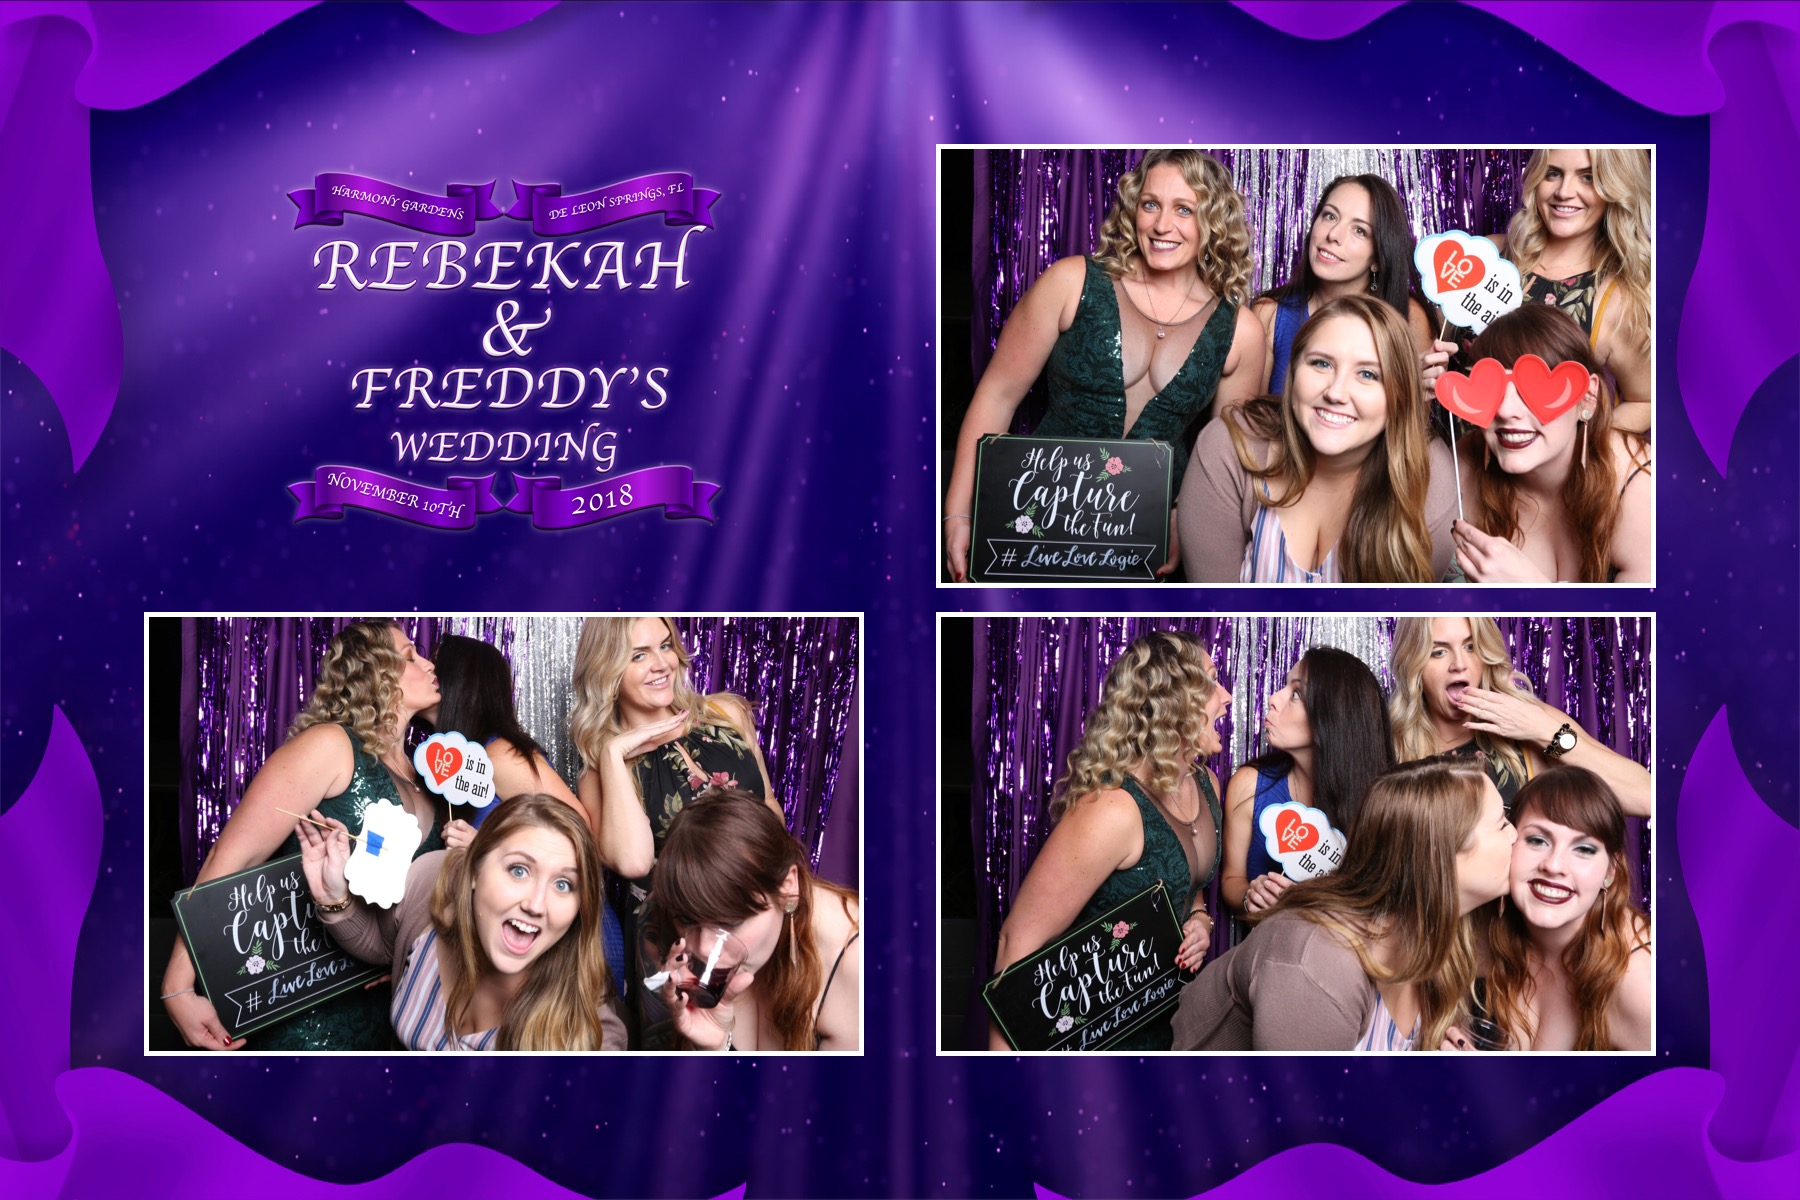 Photo Booth fun At Rebekah and Freddy's Wedding : Chamber Hart Photography Booth Chamber Harmony Gardens